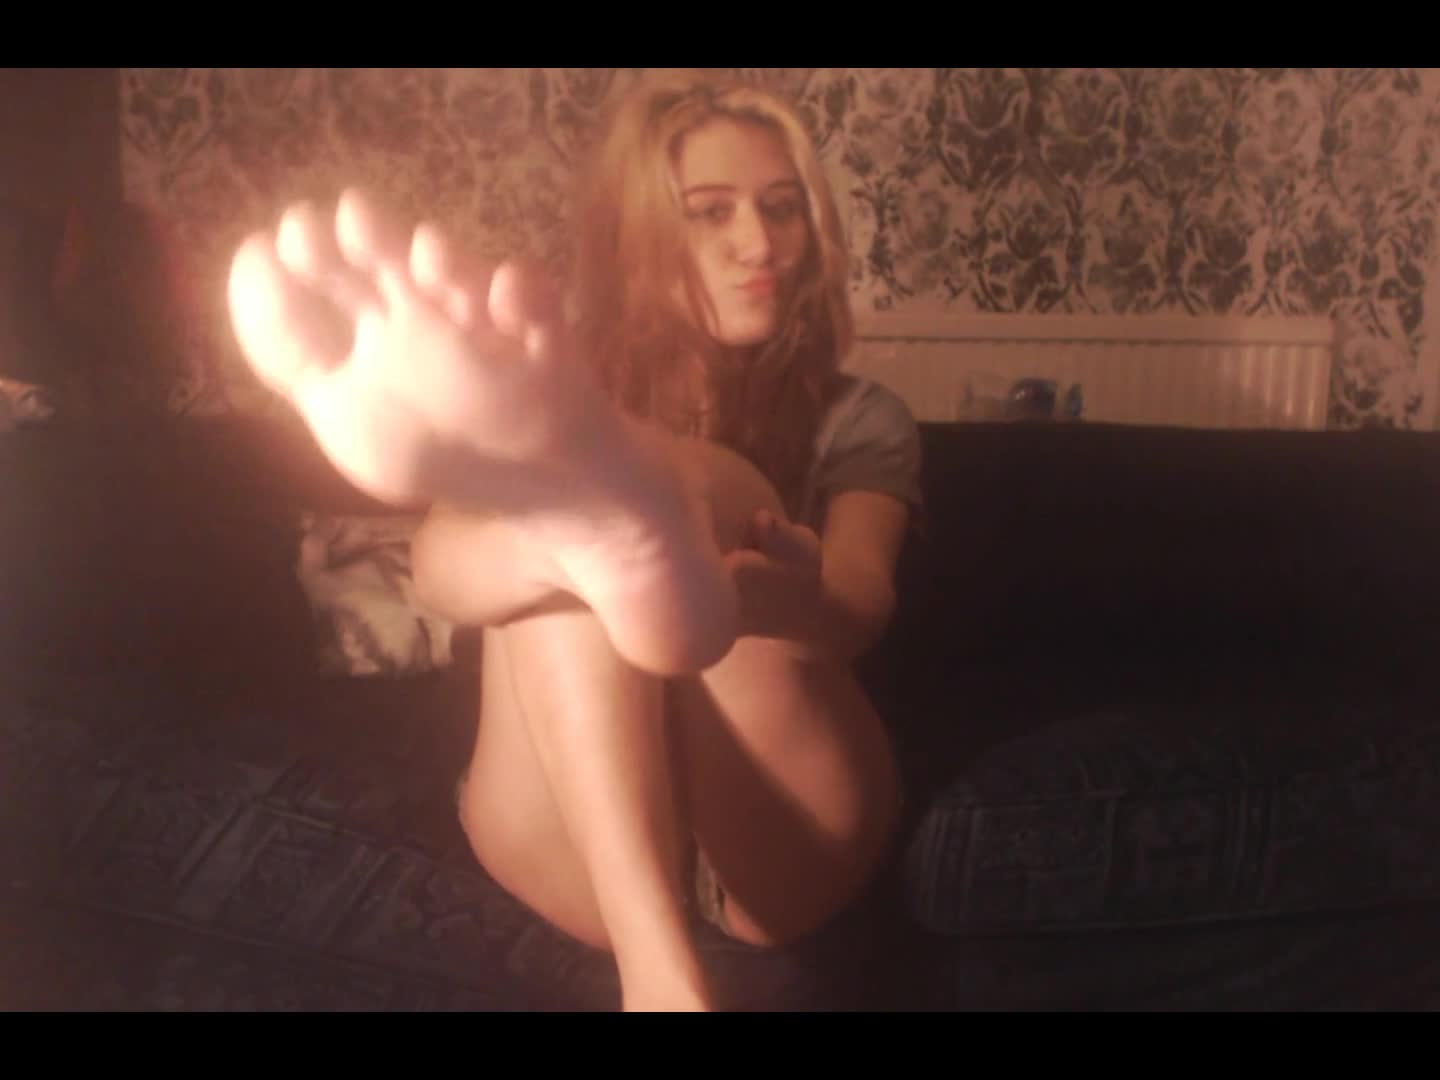 """MayaLoux"" (Barefoot, Foot Domination, Foot Fetish, Foot Slave Training, Foot Worship) Kiss Lick Smell My Feet Foot Worship - ManyVids Production"